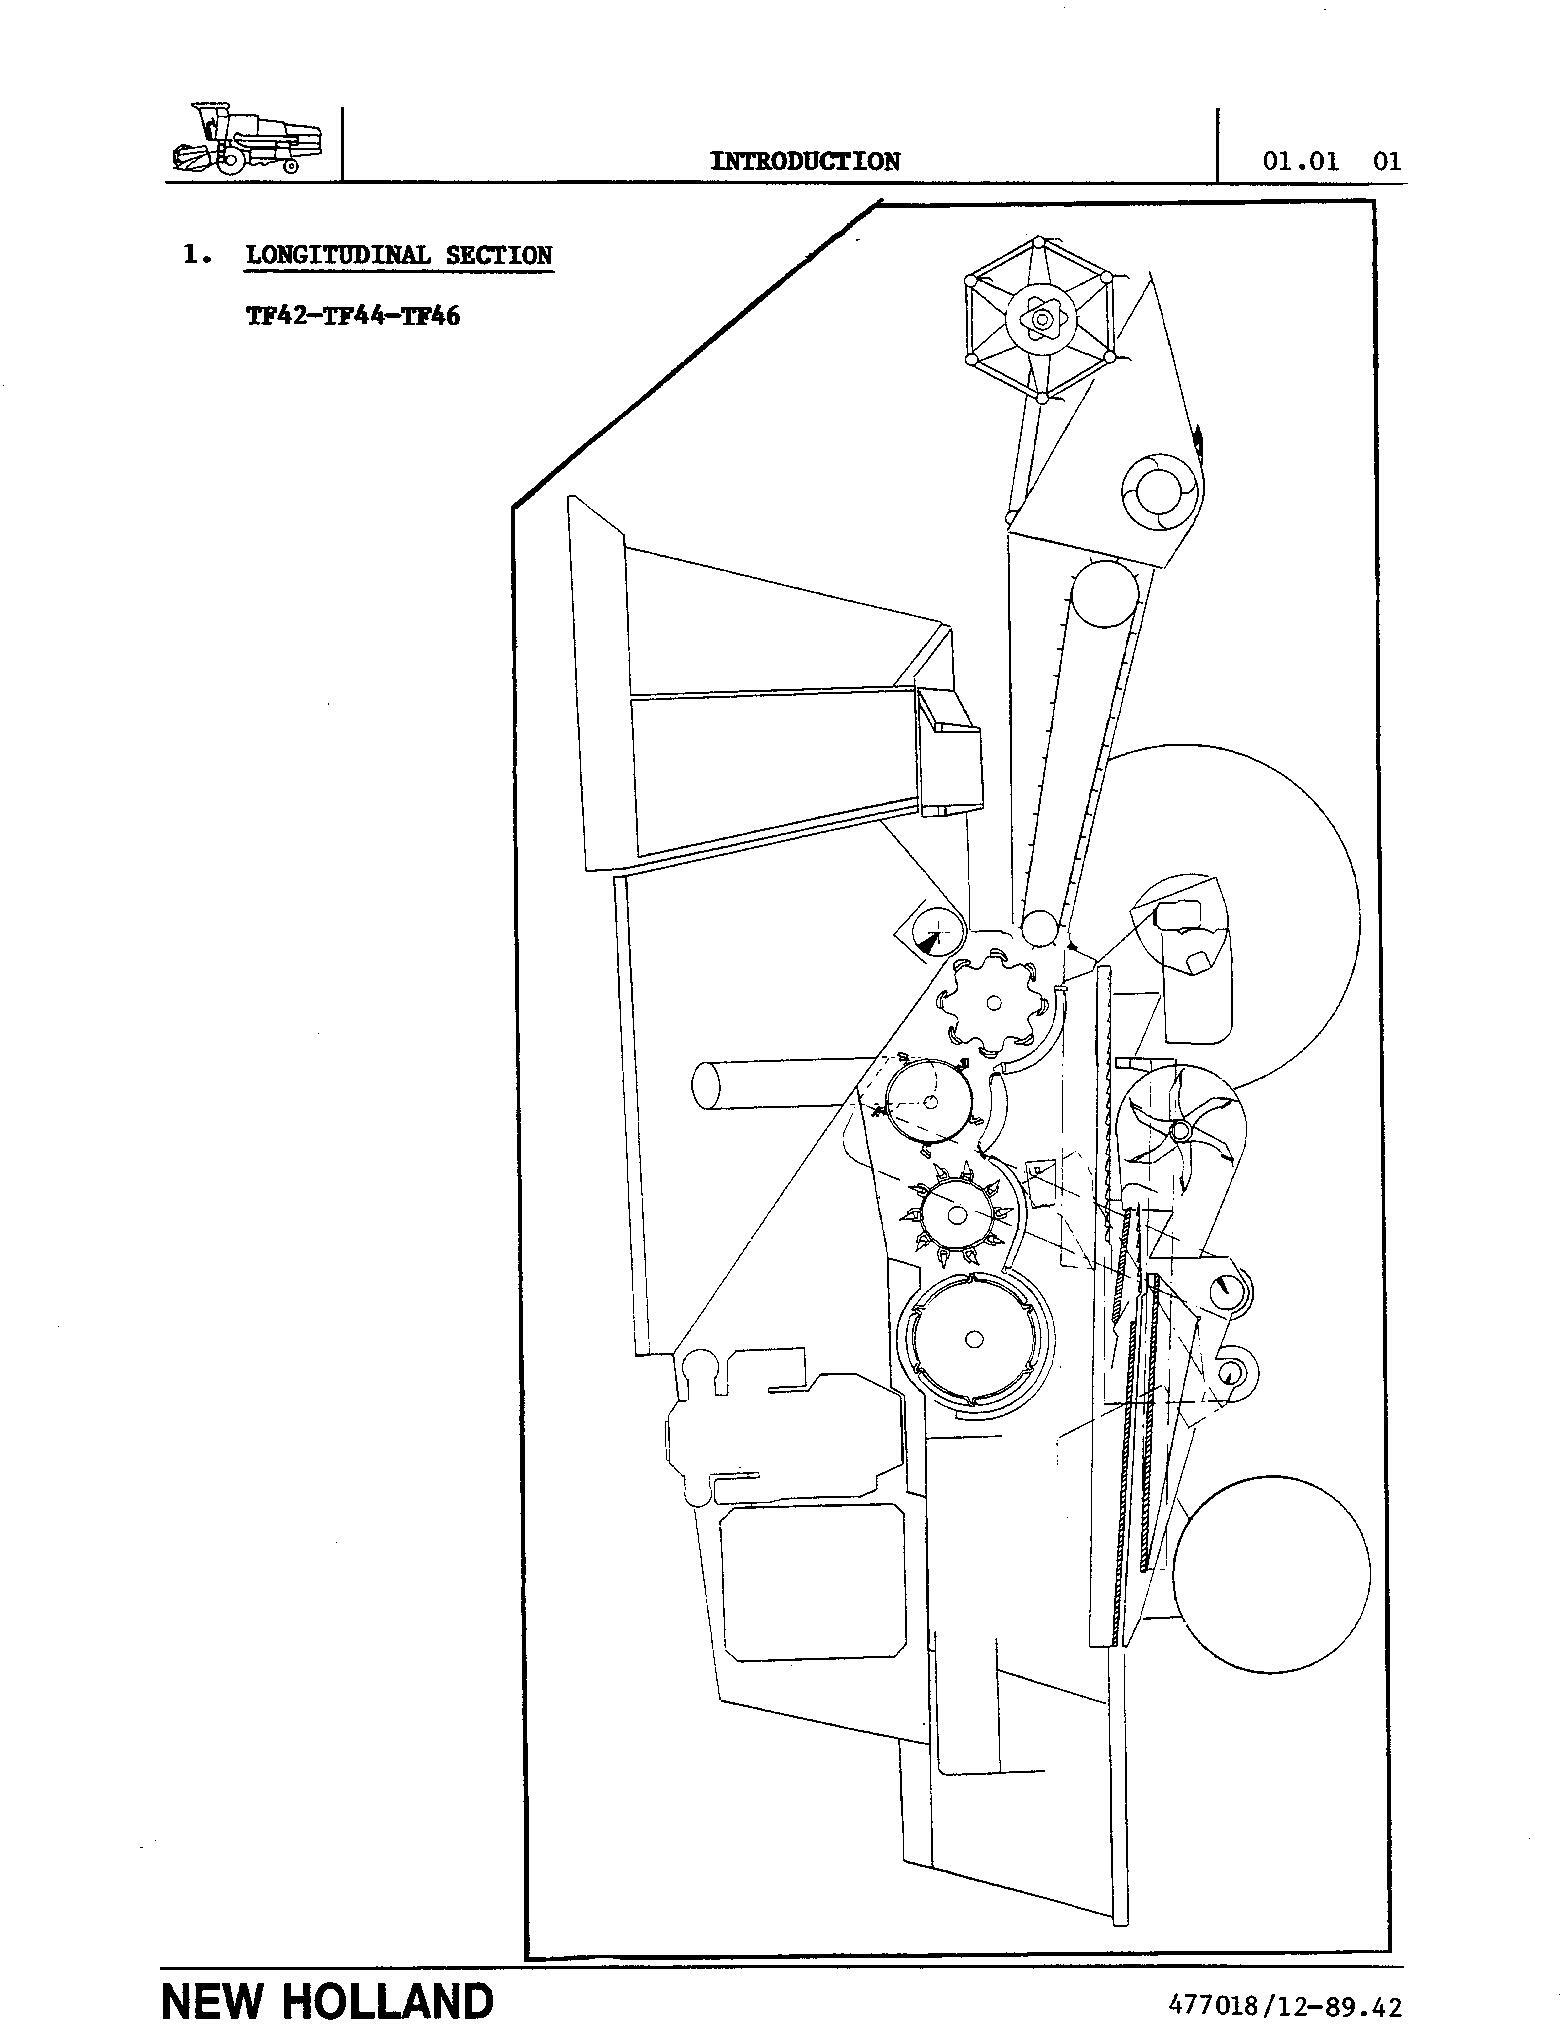 New Holland TX36, TX66, TX68 Combines (for TX66&TX68 Mechanical Info only) Service Manual - 2